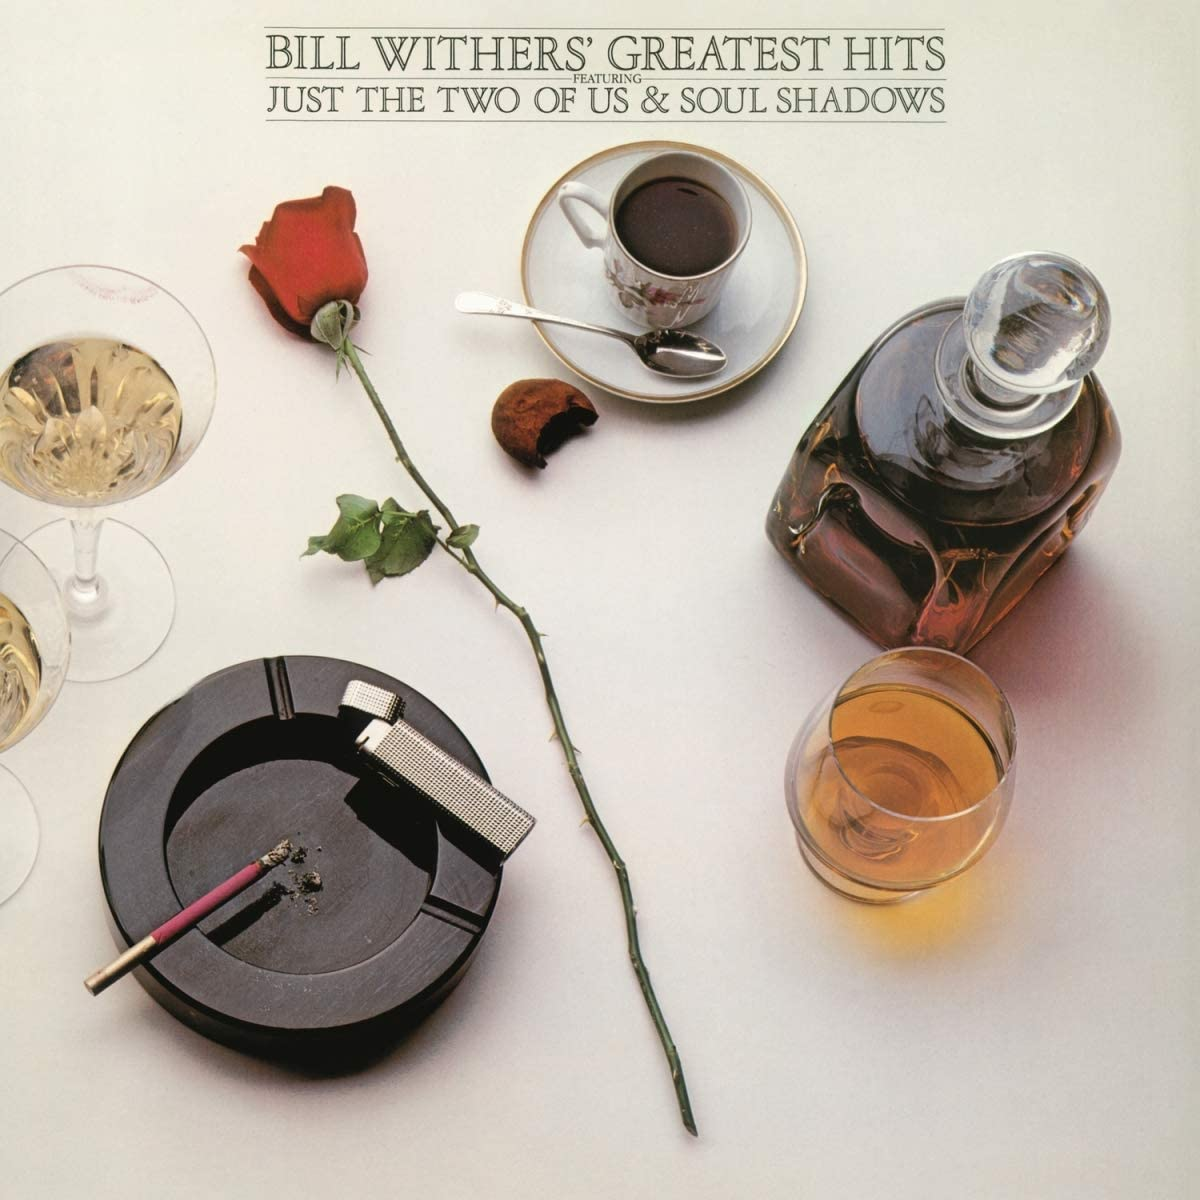 Bill Withers - Greatest Hits Just the Two of Us and Soul Shadows